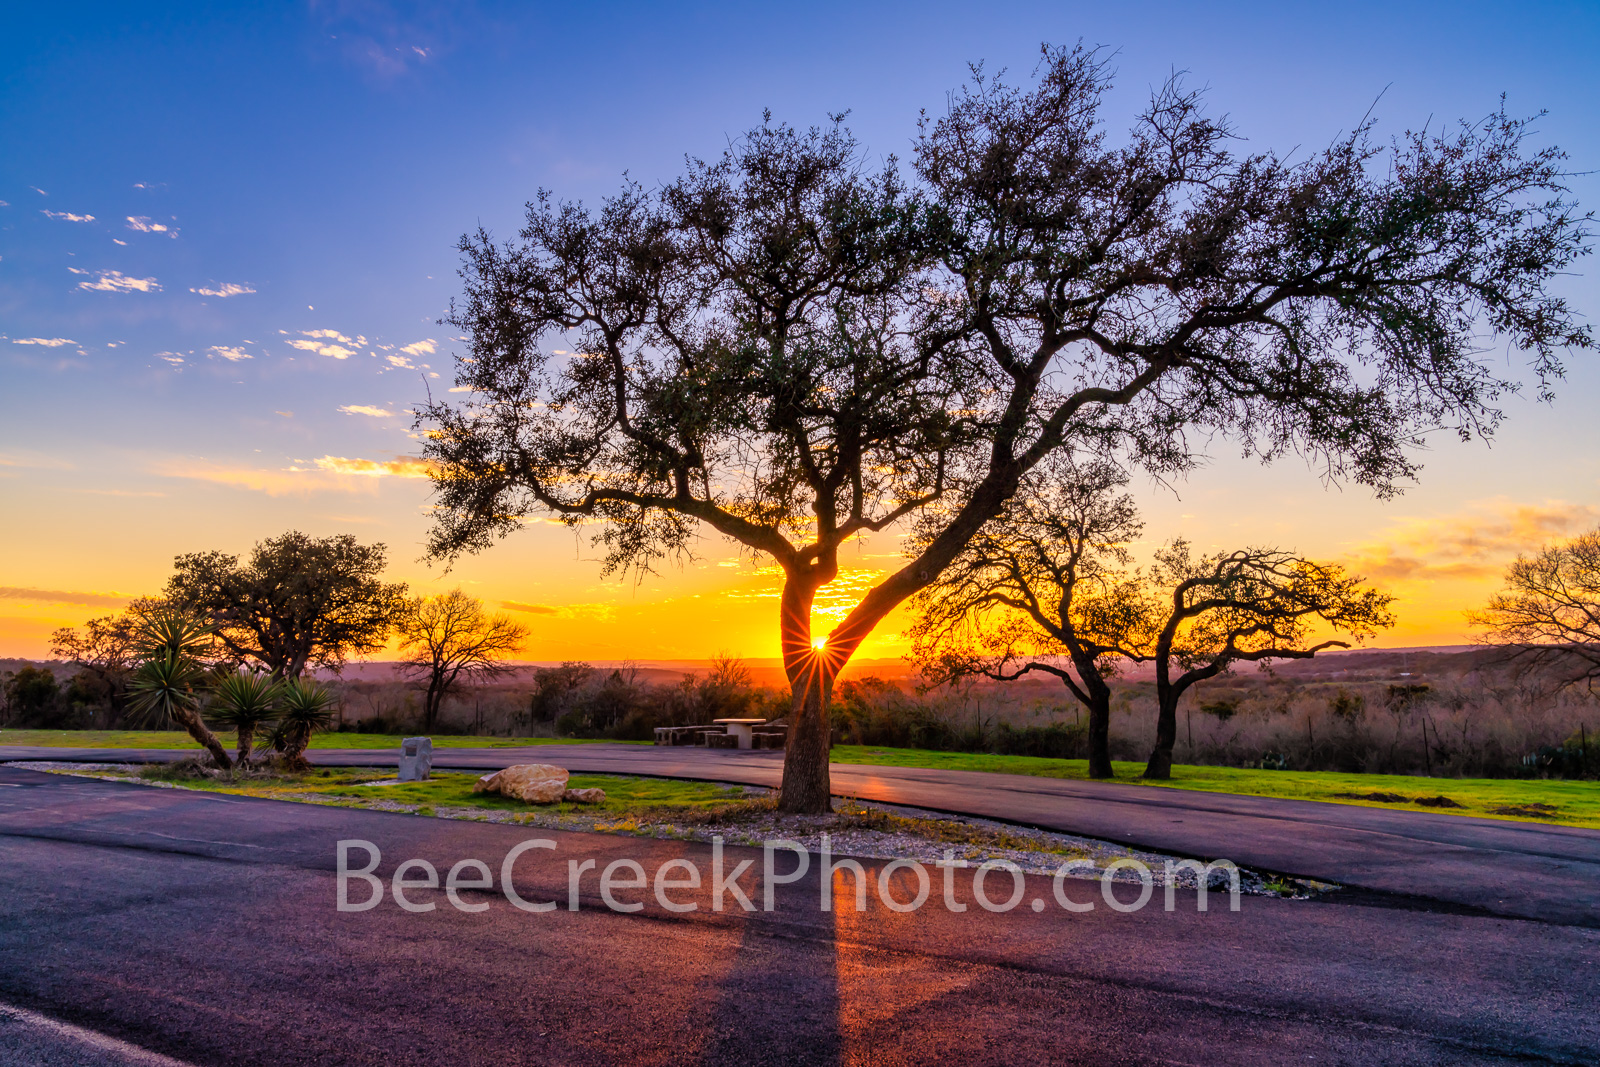 texas, rest stop, texas hill country, hill country, sunset, landscape, landscapes, tree, trees, yucca, road, colors, sunset colors, yellow, orange, blue, llano county,